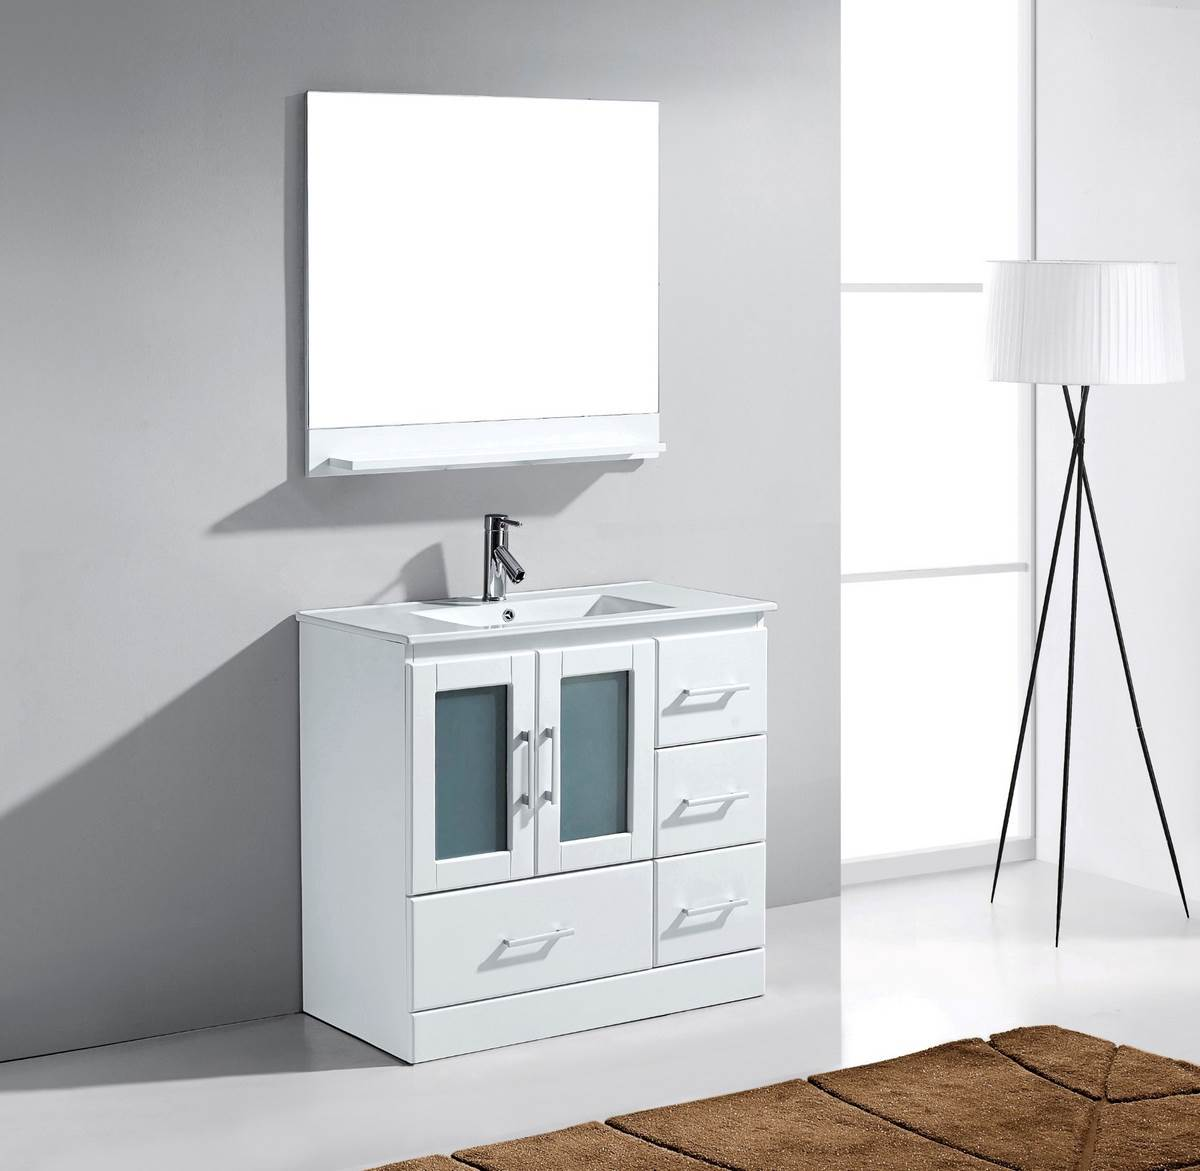 book of bathroom vanities and cabinets sets in thailand by Track Bathroom Vanity Lowe's Bathroom Vanity Cabinets